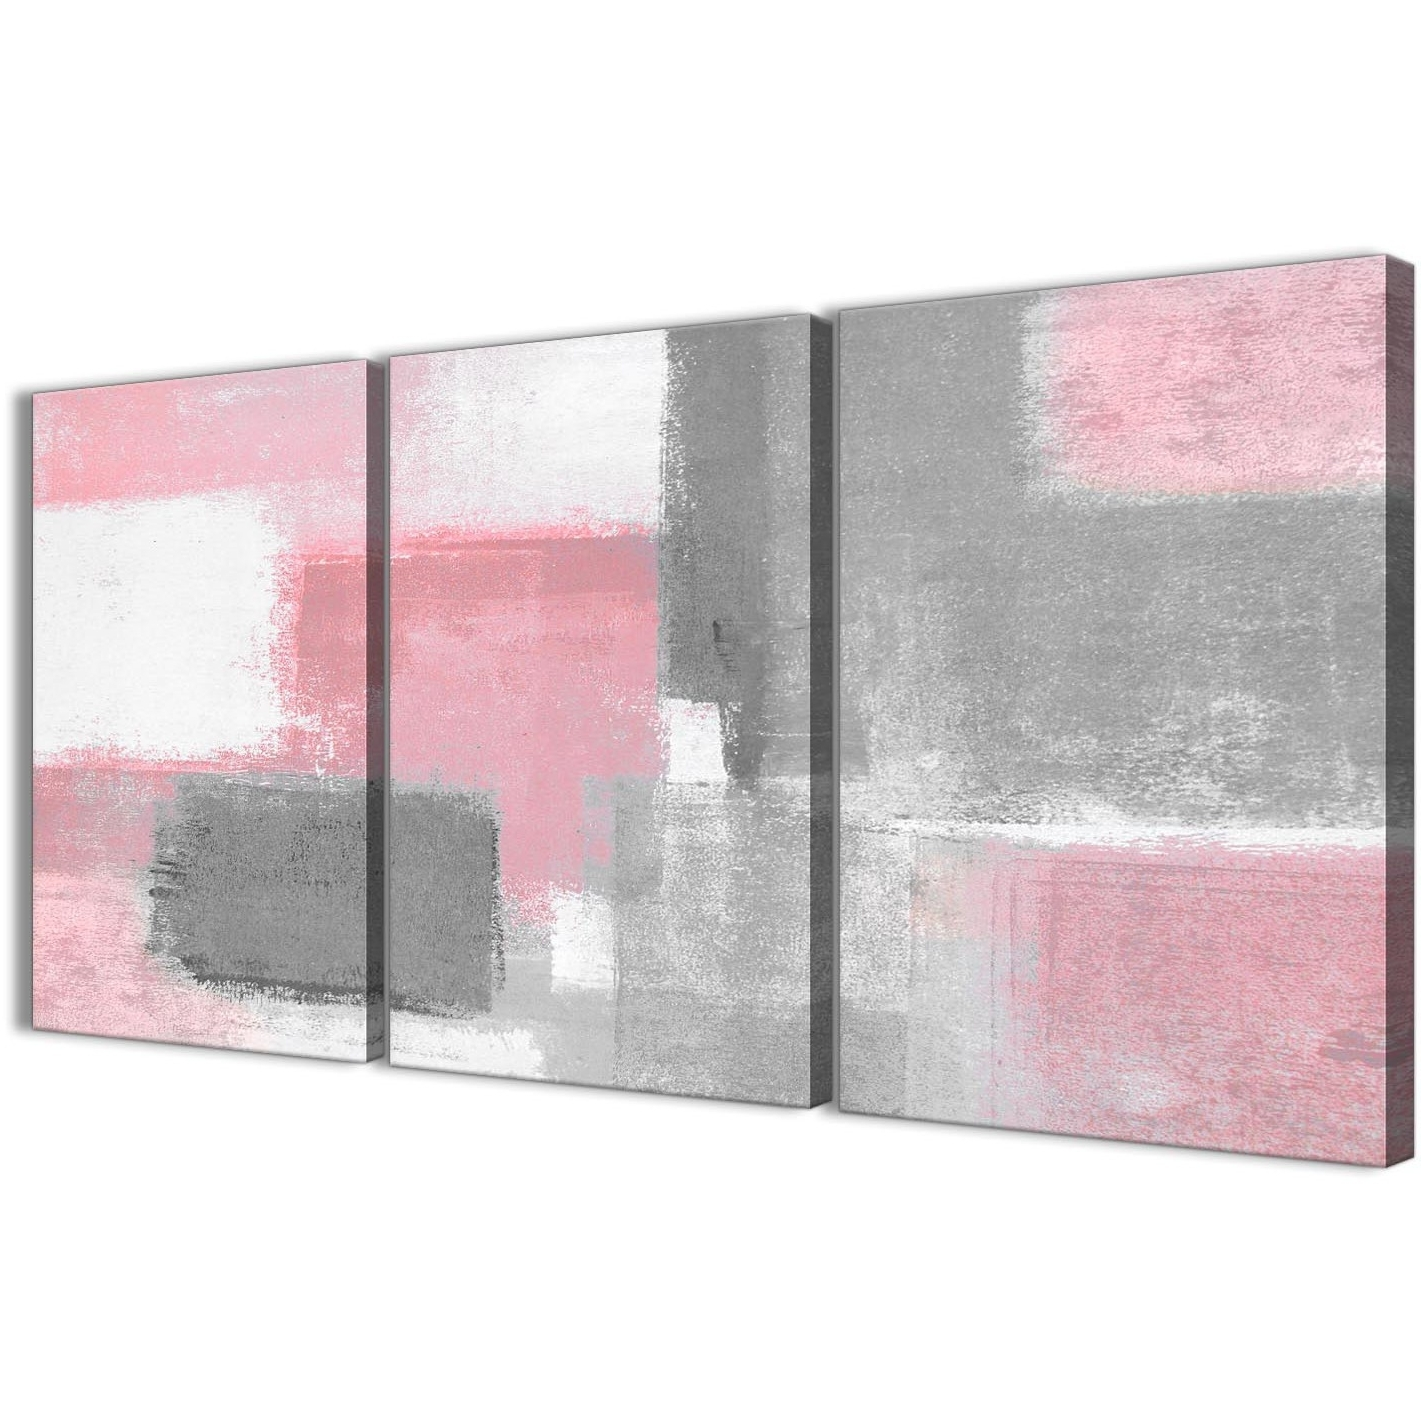 Preferred Gray Canvas Wall Art With 3 Piece Blush Pink Grey Painting Office Canvas Wall Art Decor (View 11 of 15)